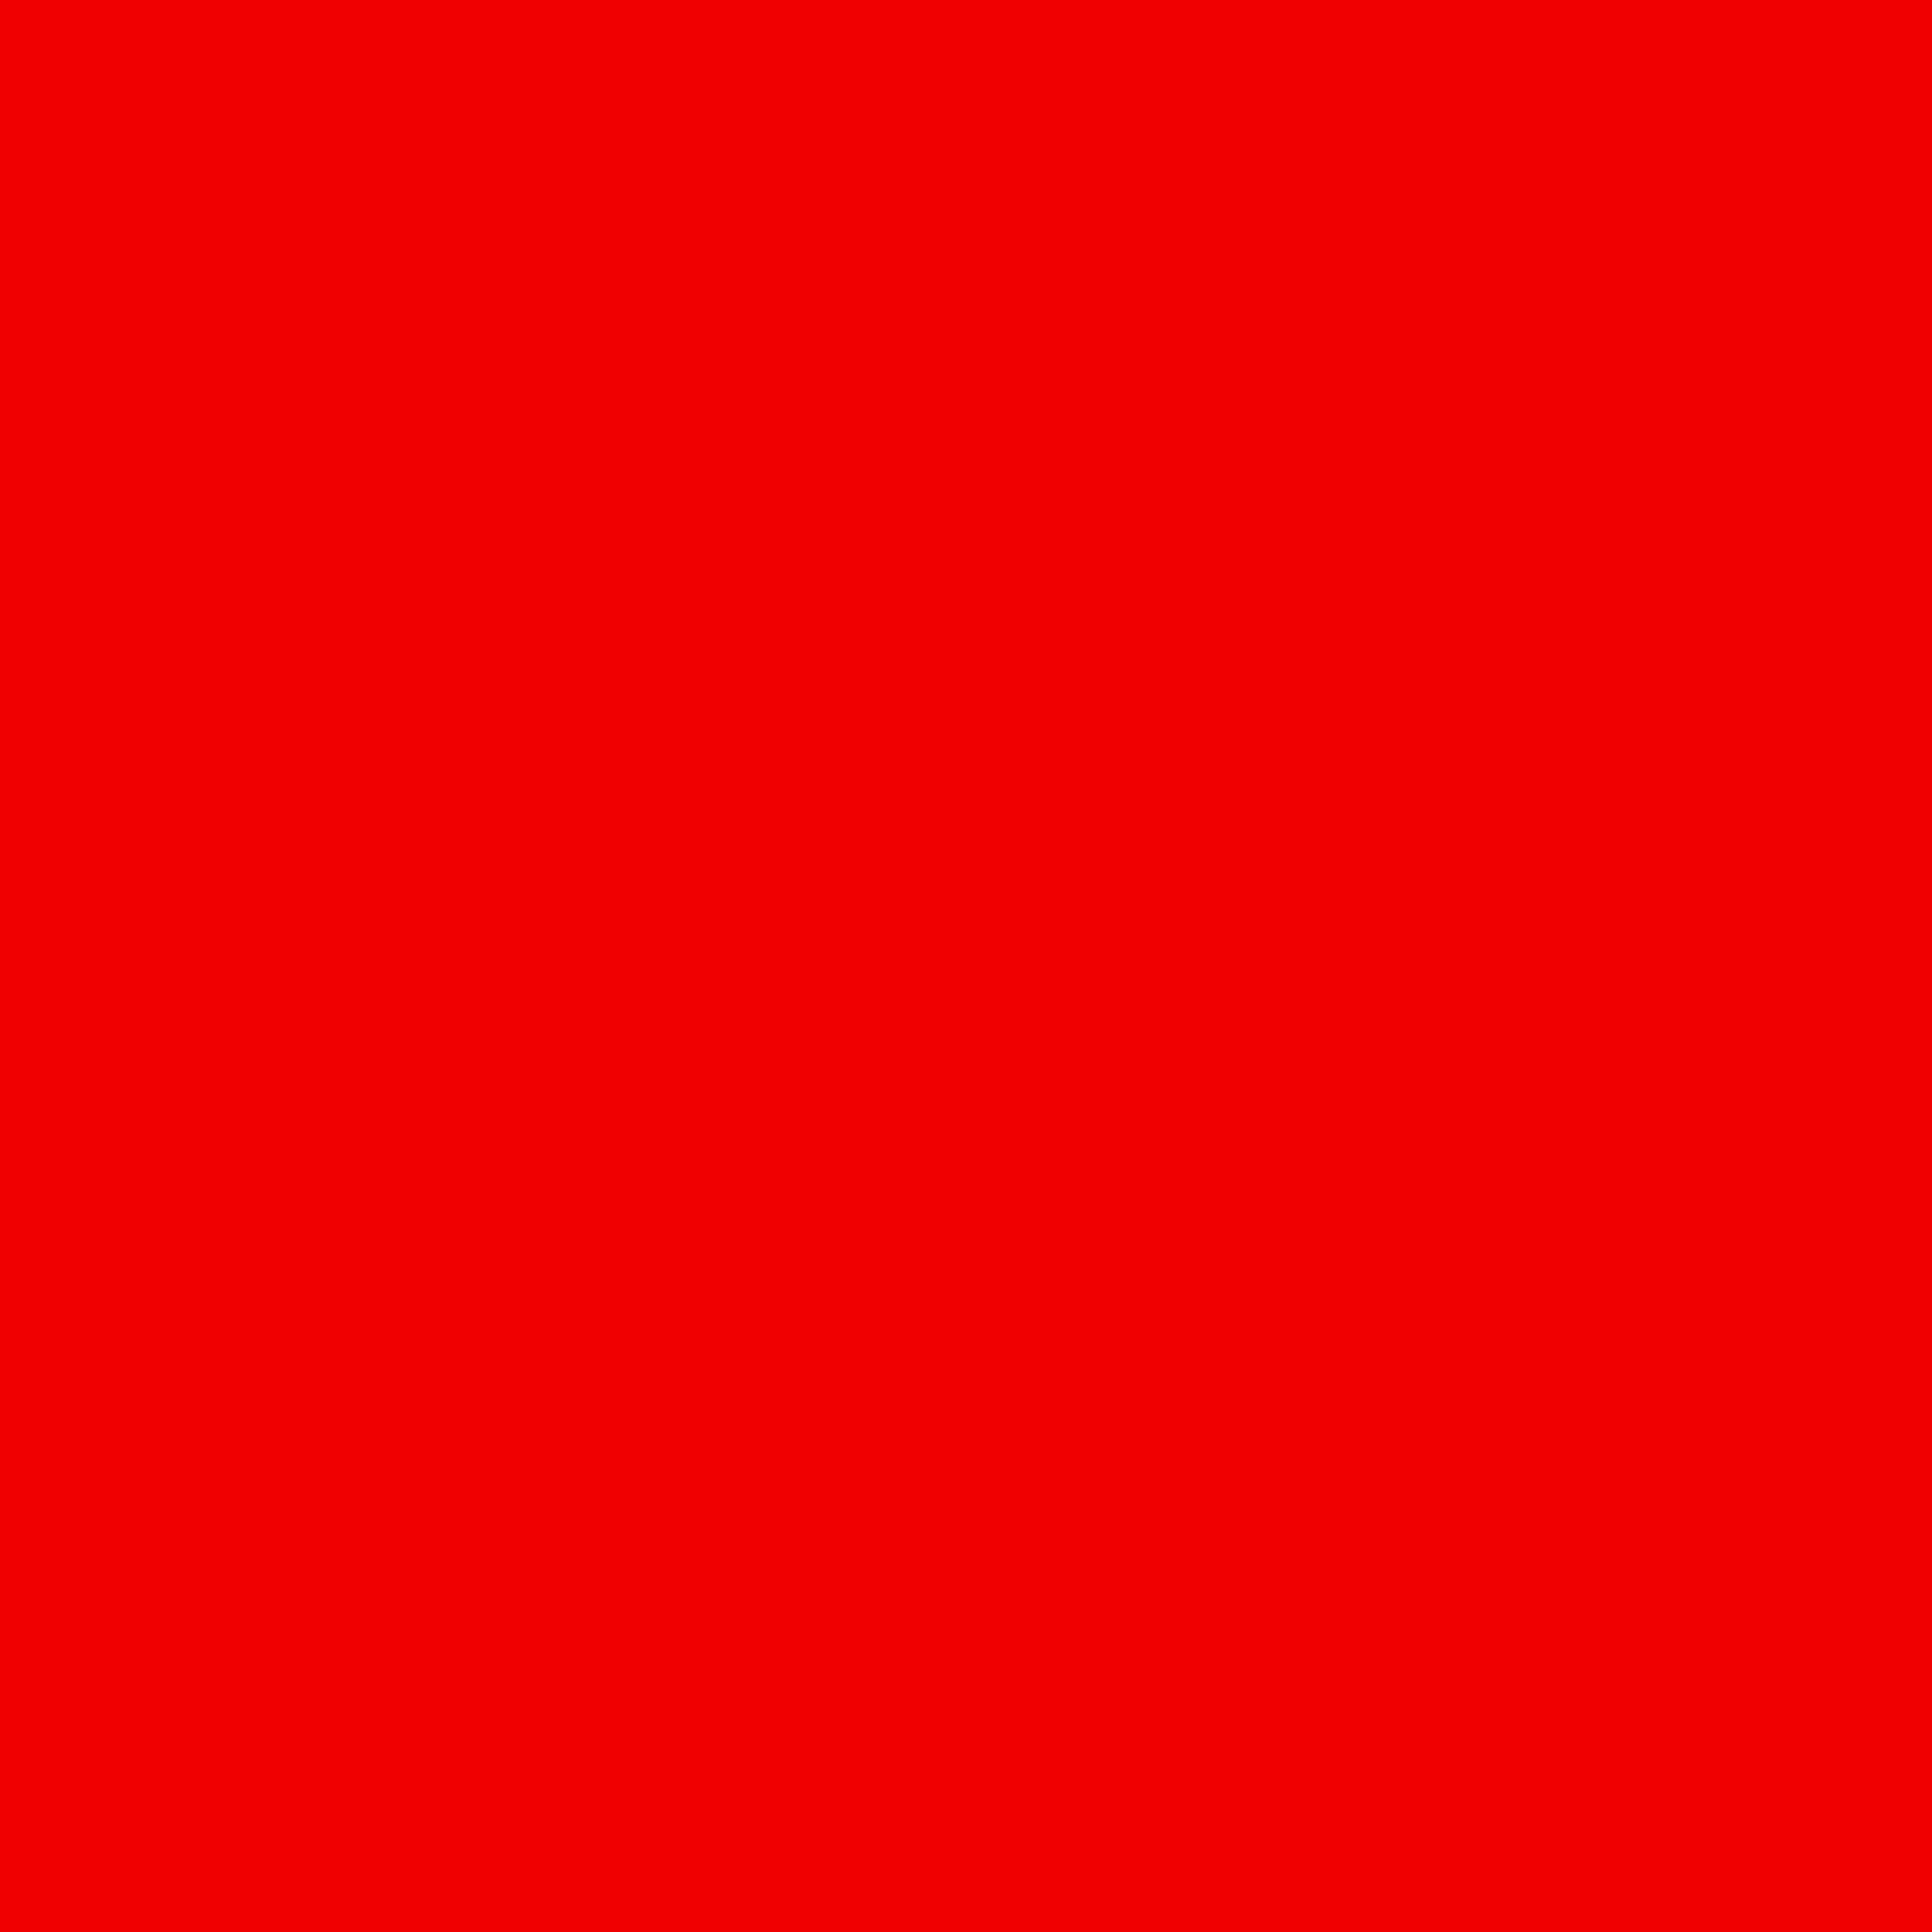 Colors: R Red